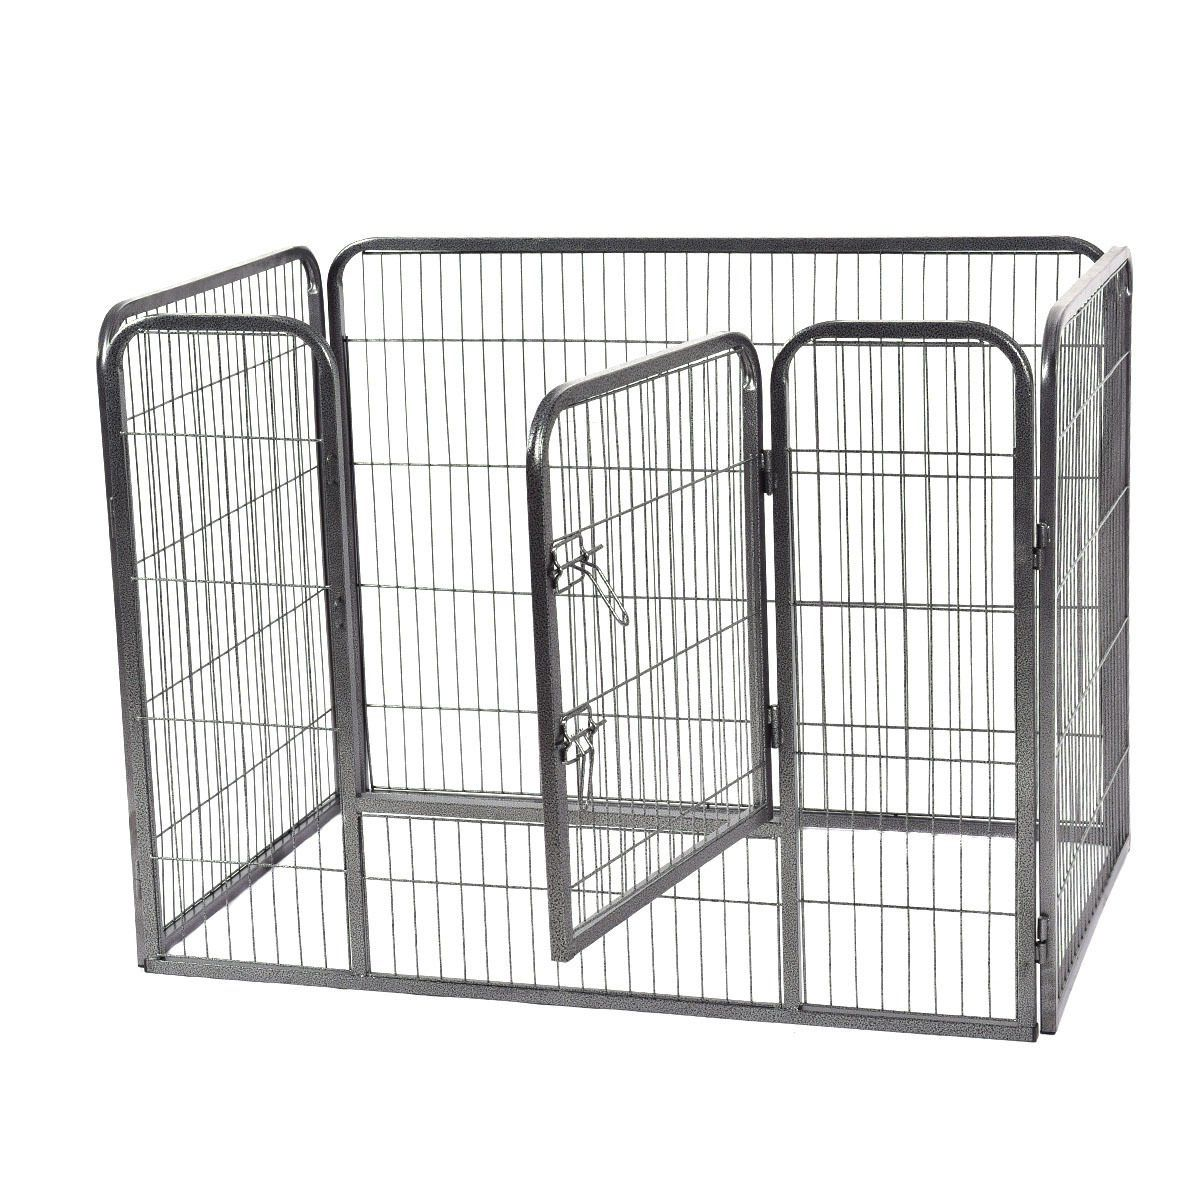 74a8903ab44 Safstar Metal Pet Playpen Exercise Pen for Dogs Cats Heavy Duty Folding Out  Door Fence 4